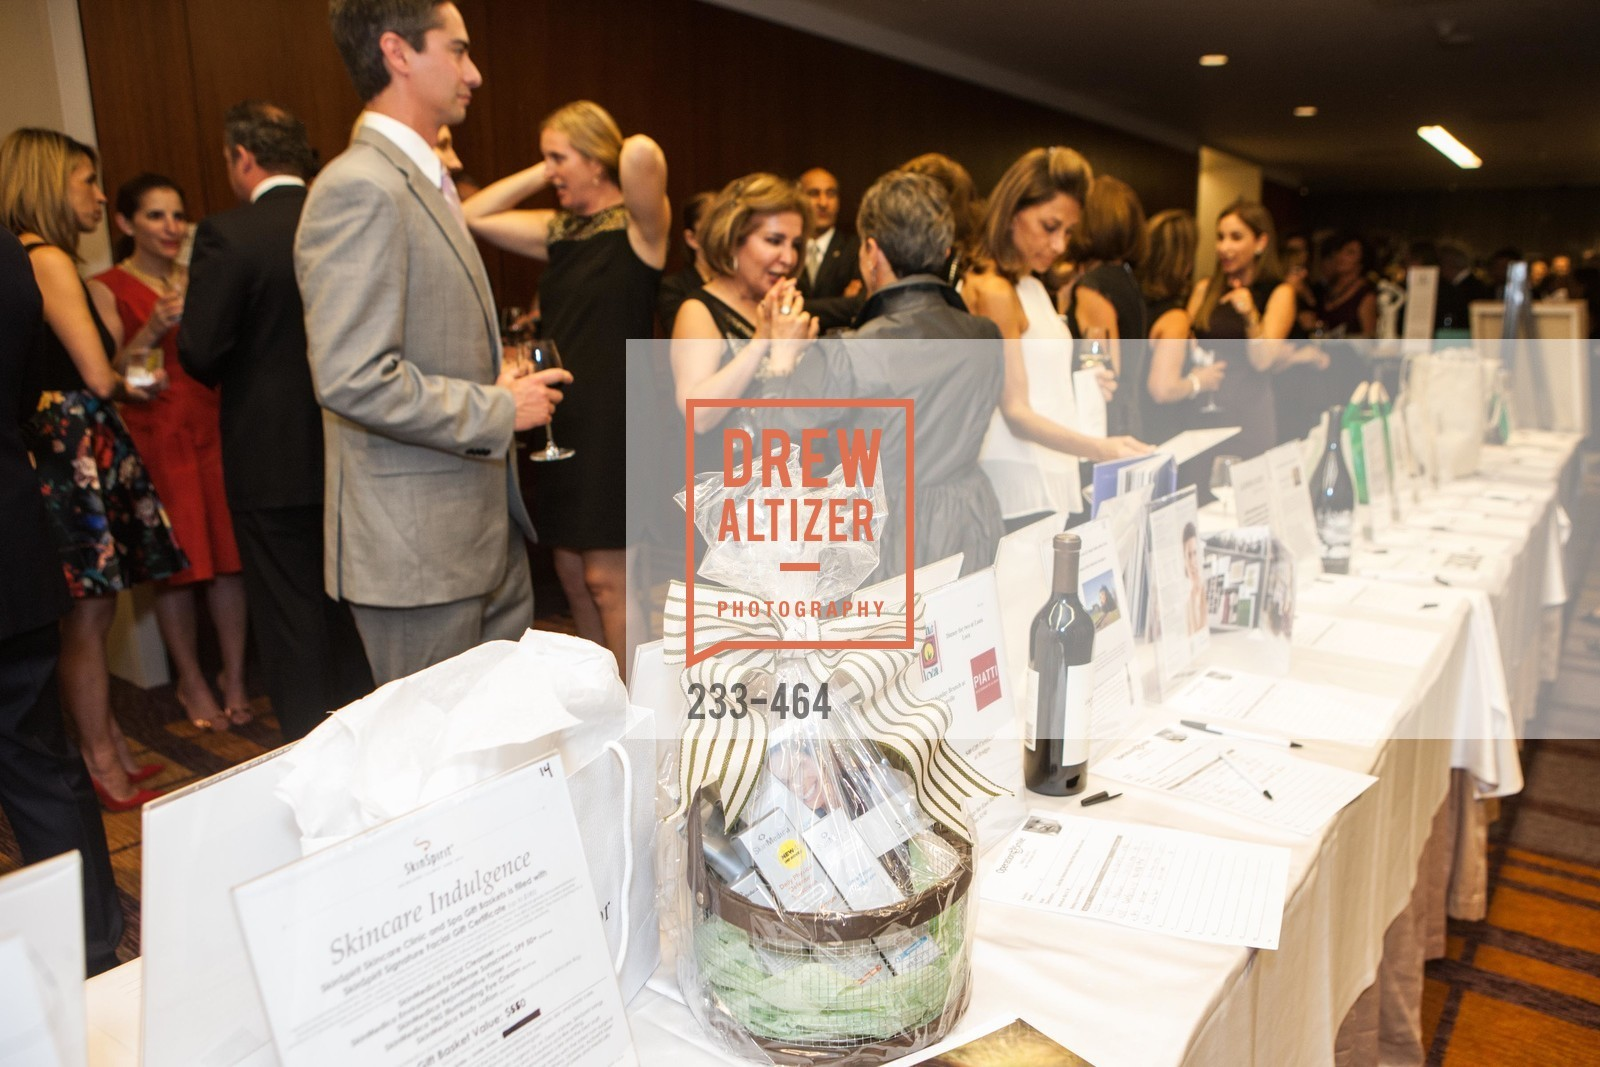 Atmosphere, Operation Smile Presents THE SAN FRANCISCO 2015 SMILE GALA, InterContinental Hotel, November 7th, 2015,Drew Altizer, Drew Altizer Photography, full-service agency, private events, San Francisco photographer, photographer california